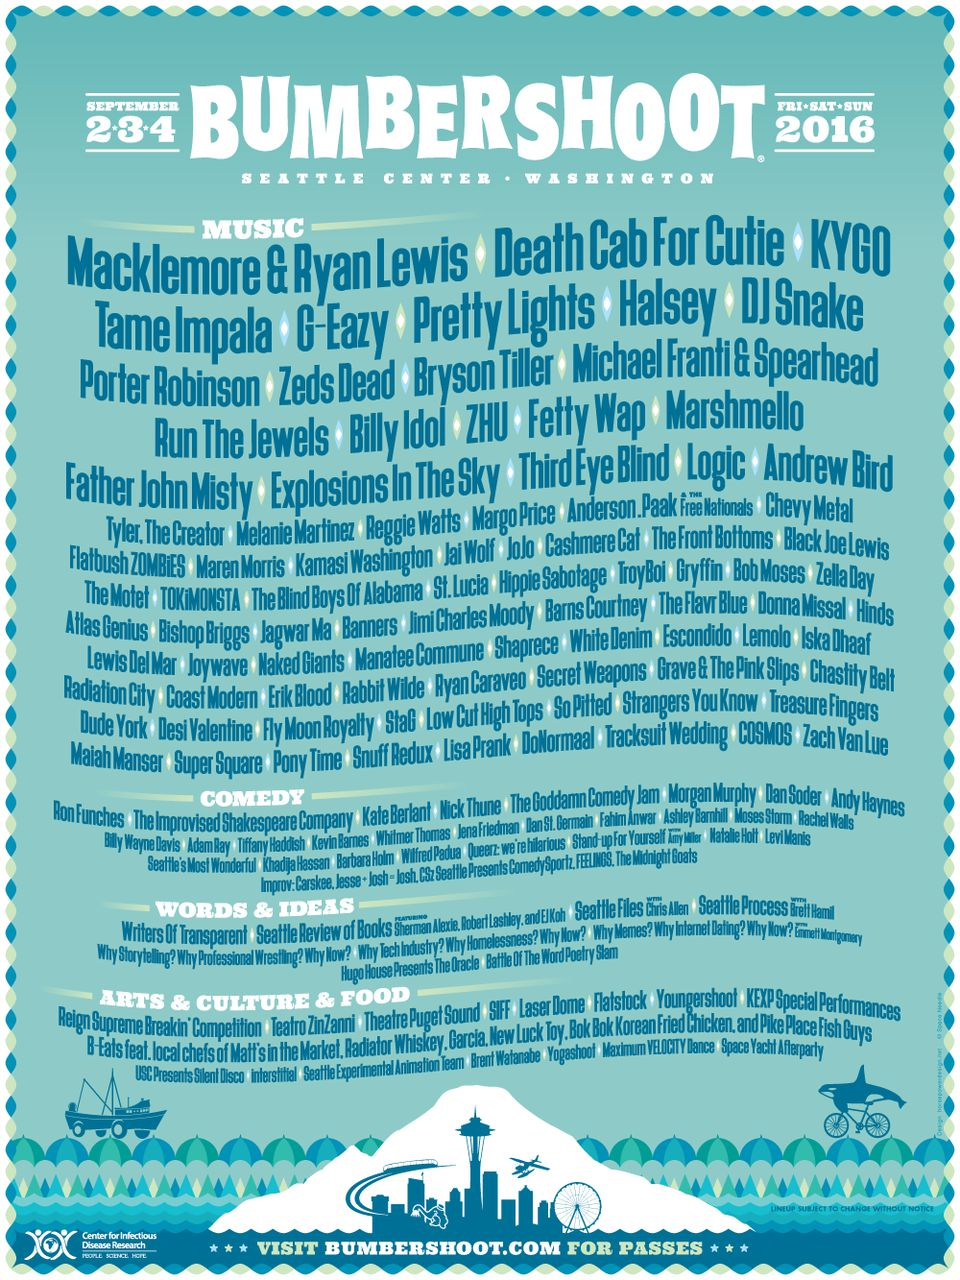 Bumbershoot, Macklemore, Death Cab For Cutie, Ron Funches